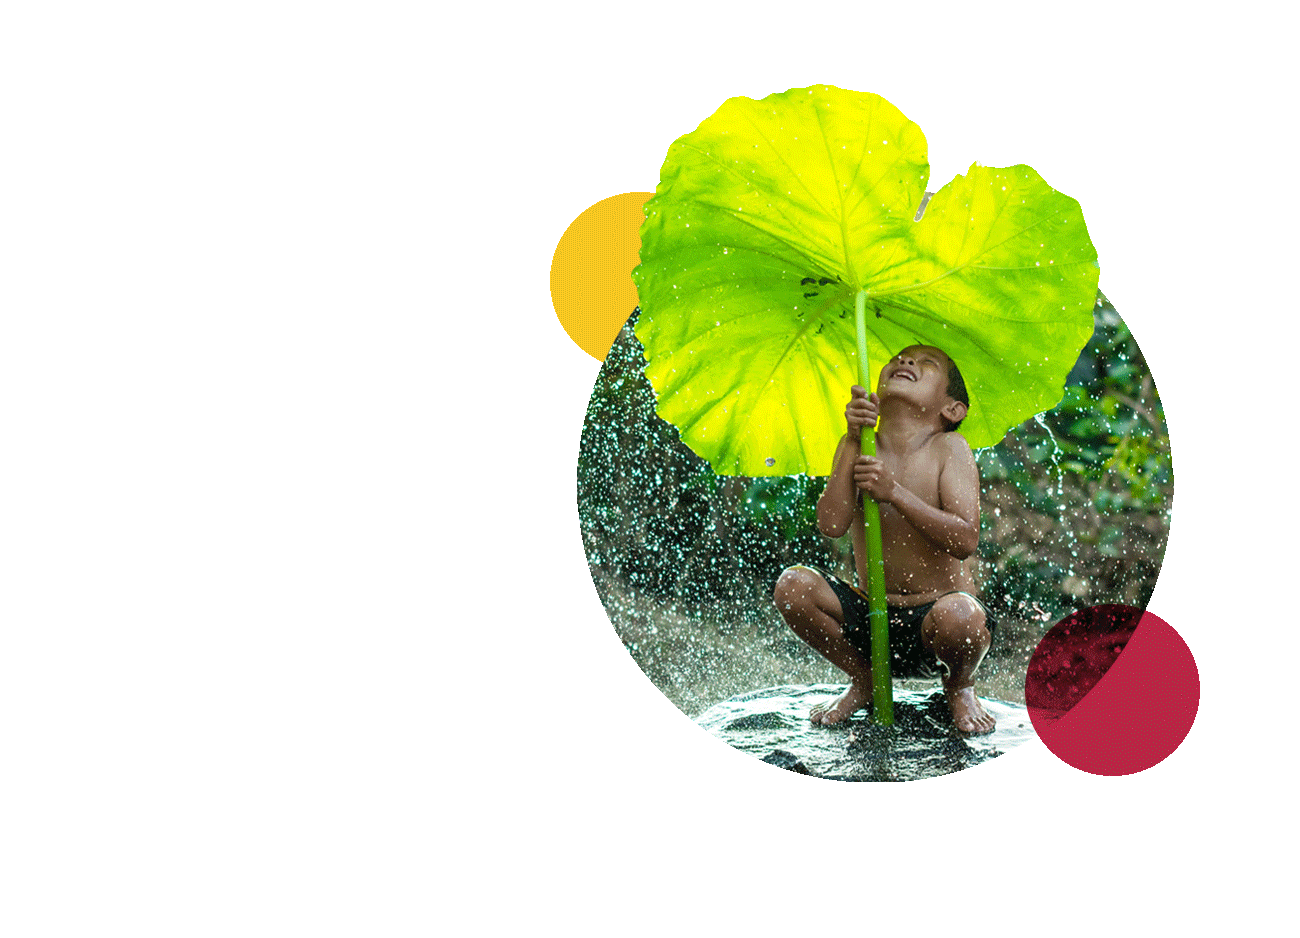 environment translation company showing children in the rain with a big green leaf